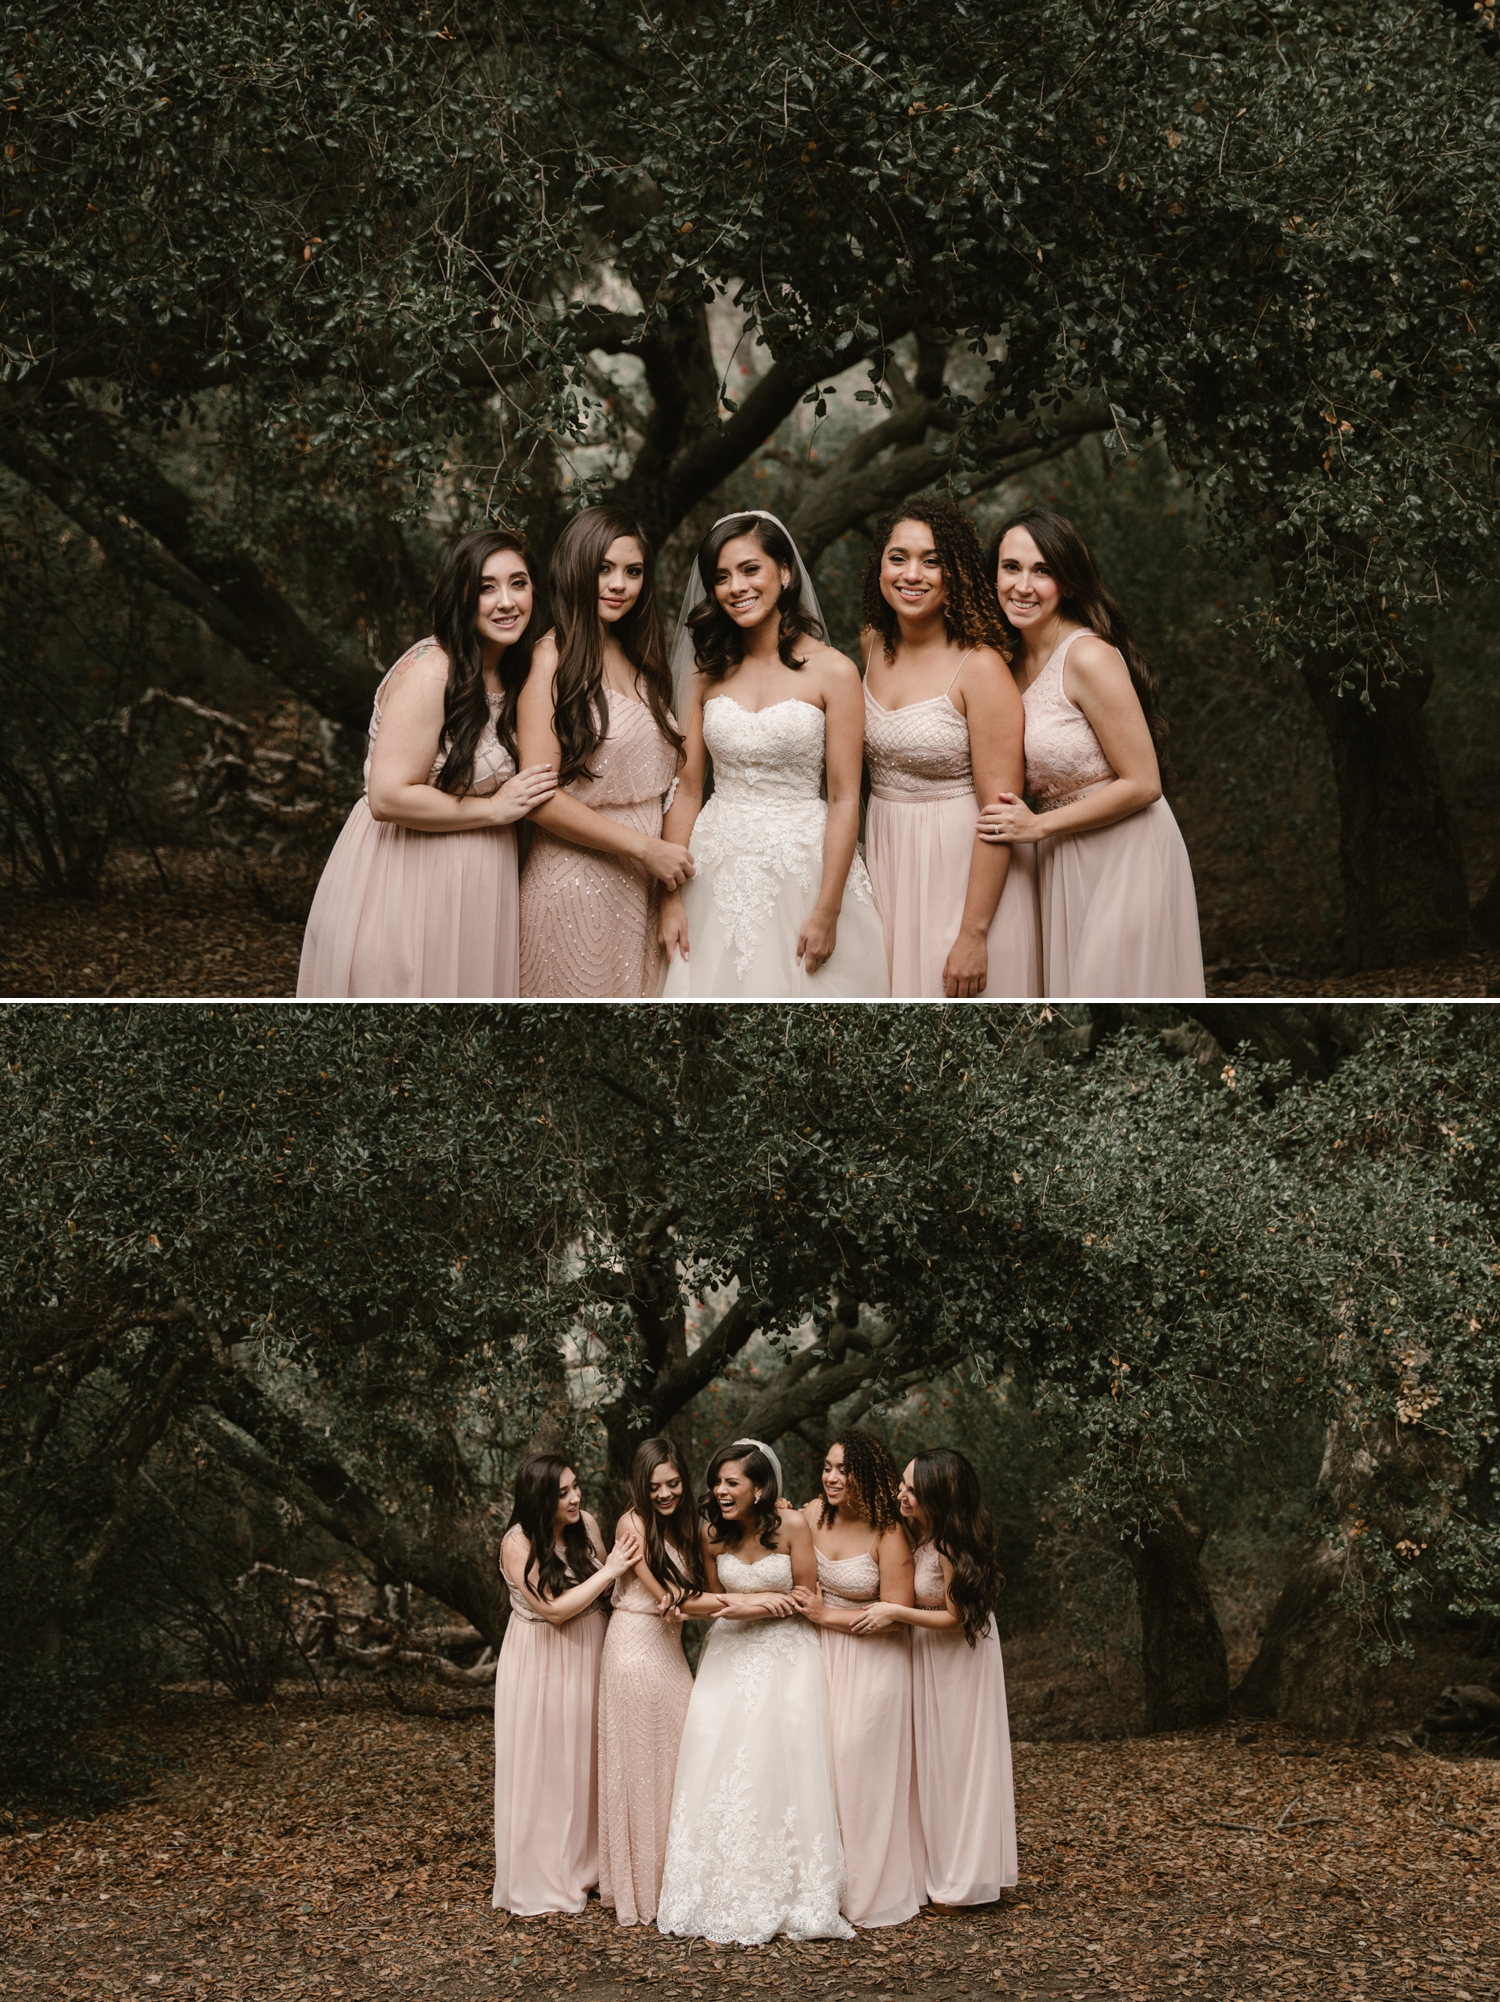 Bridesmaids formals at Oak Canyon Nature Center by Paige Nelson